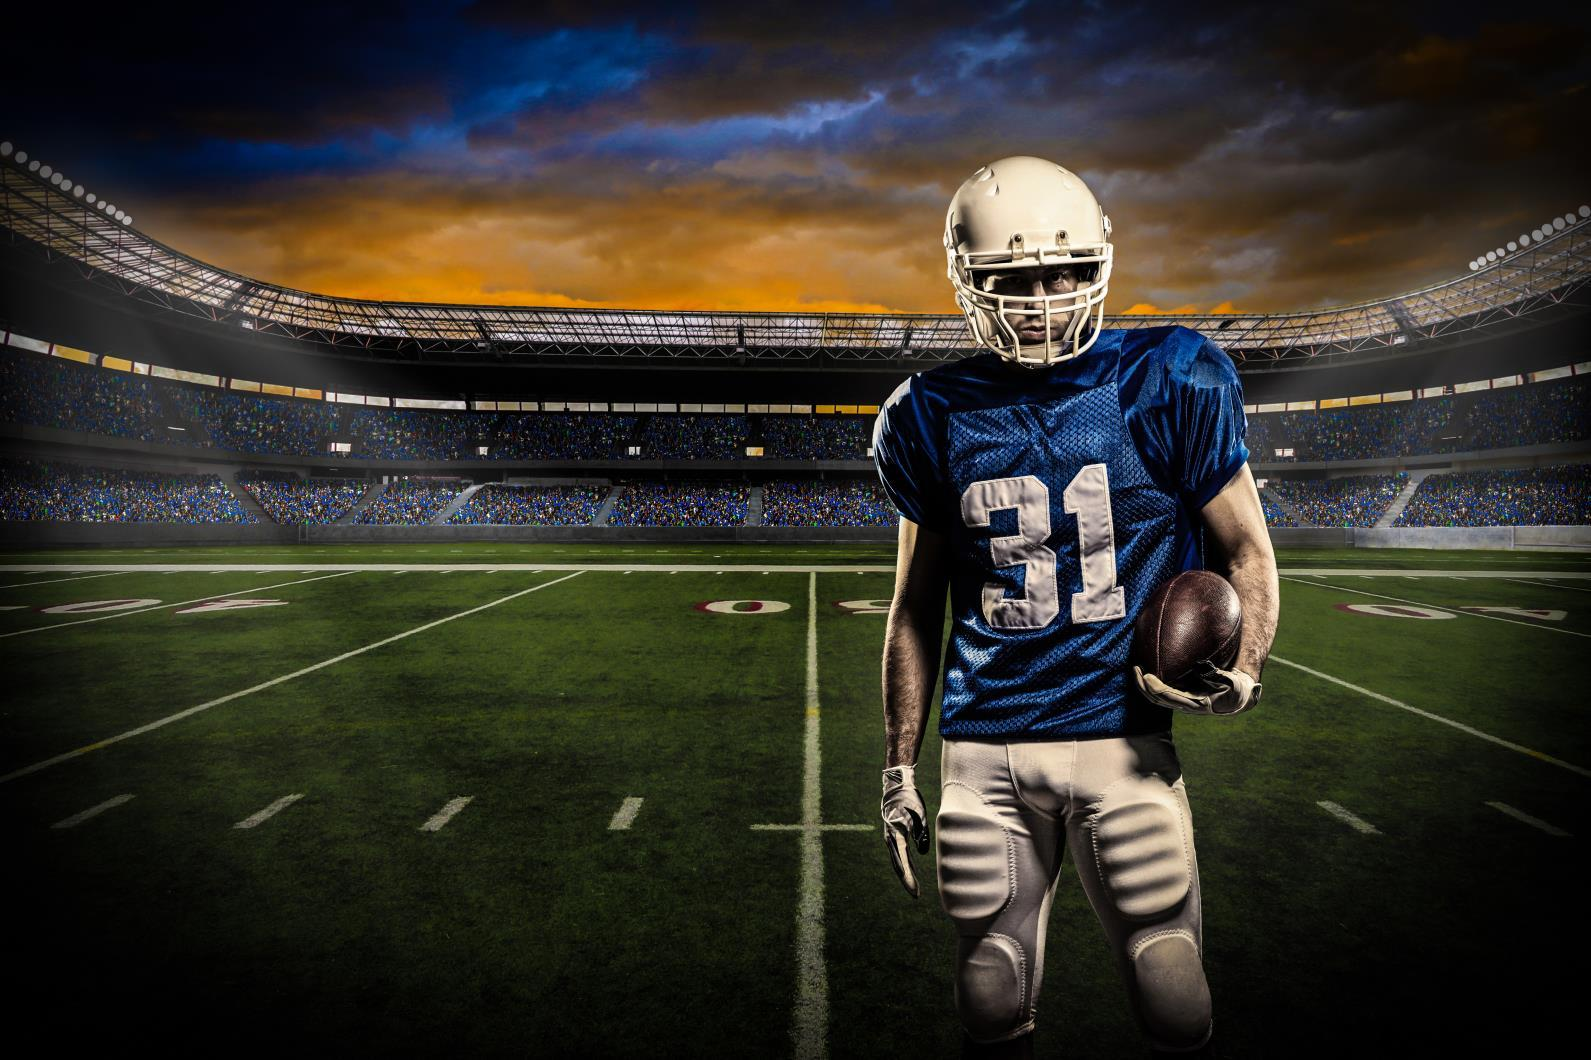 Football Hd Wespeakfootball: American Football Wallpapers